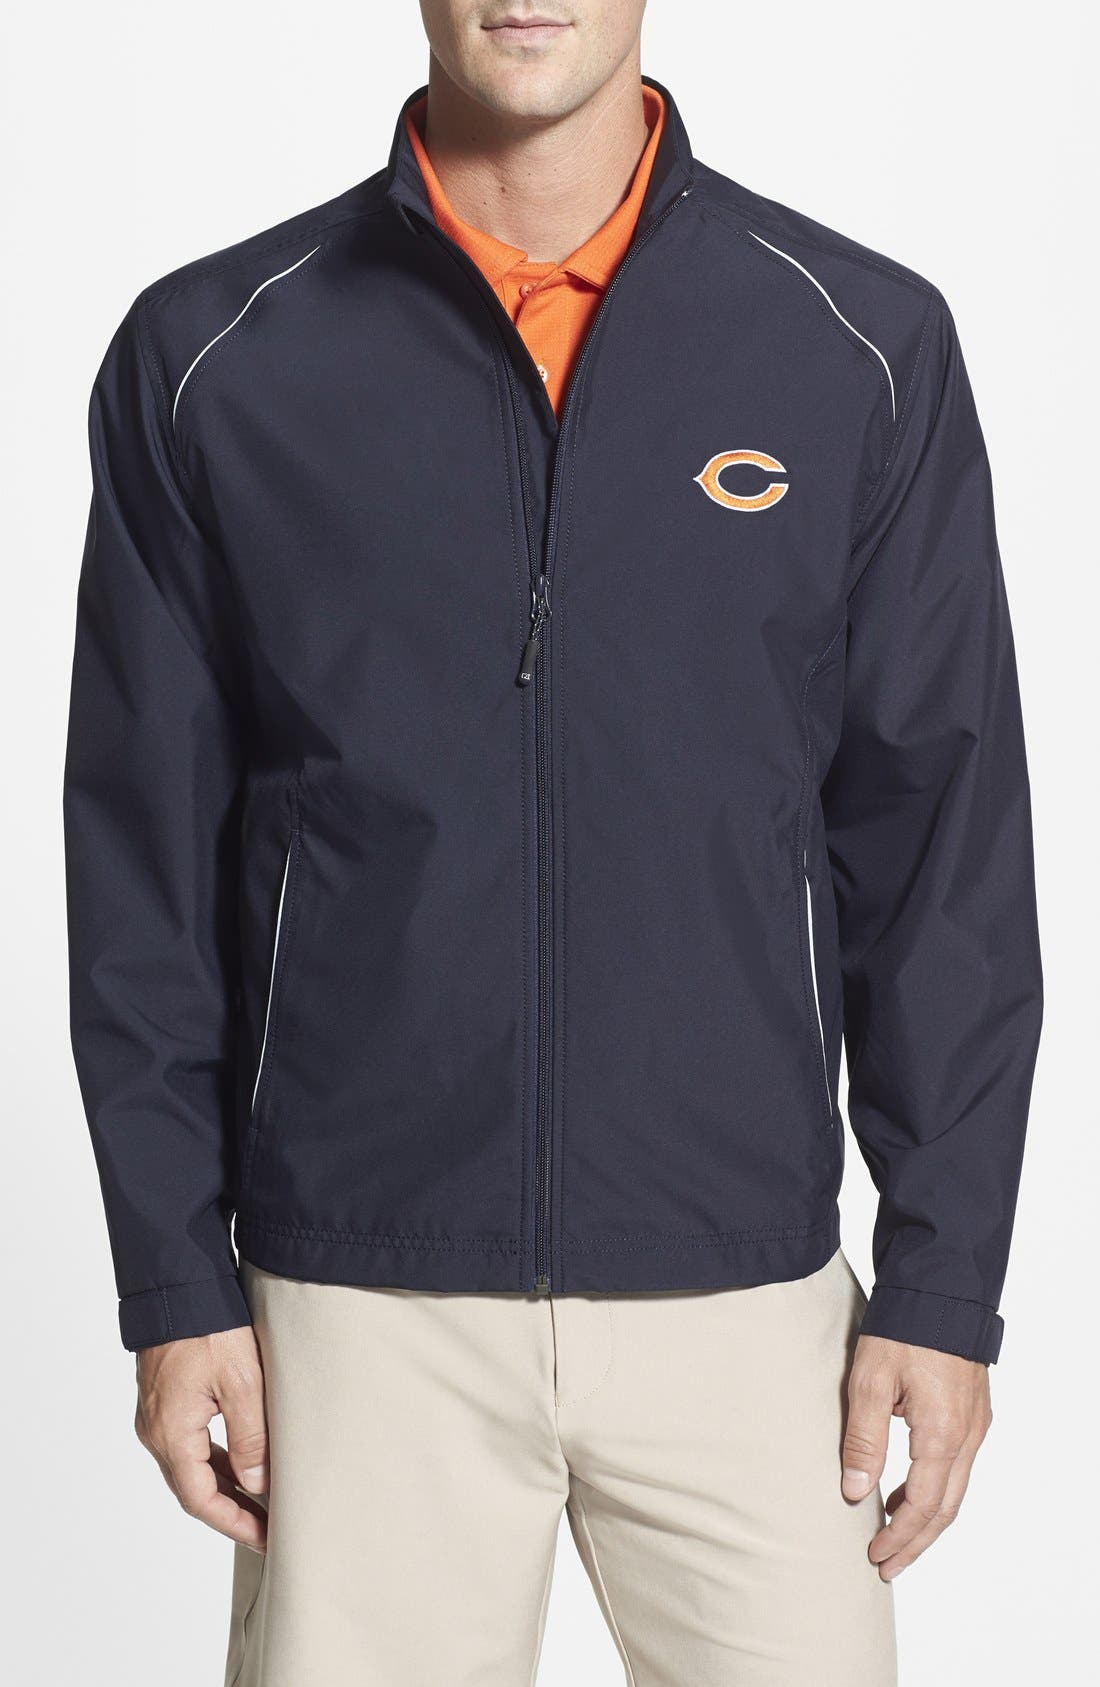 'Chicago Bears - Beacon' WeatherTec Wind & Water Resistant Jacket,                             Main thumbnail 1, color,                             410